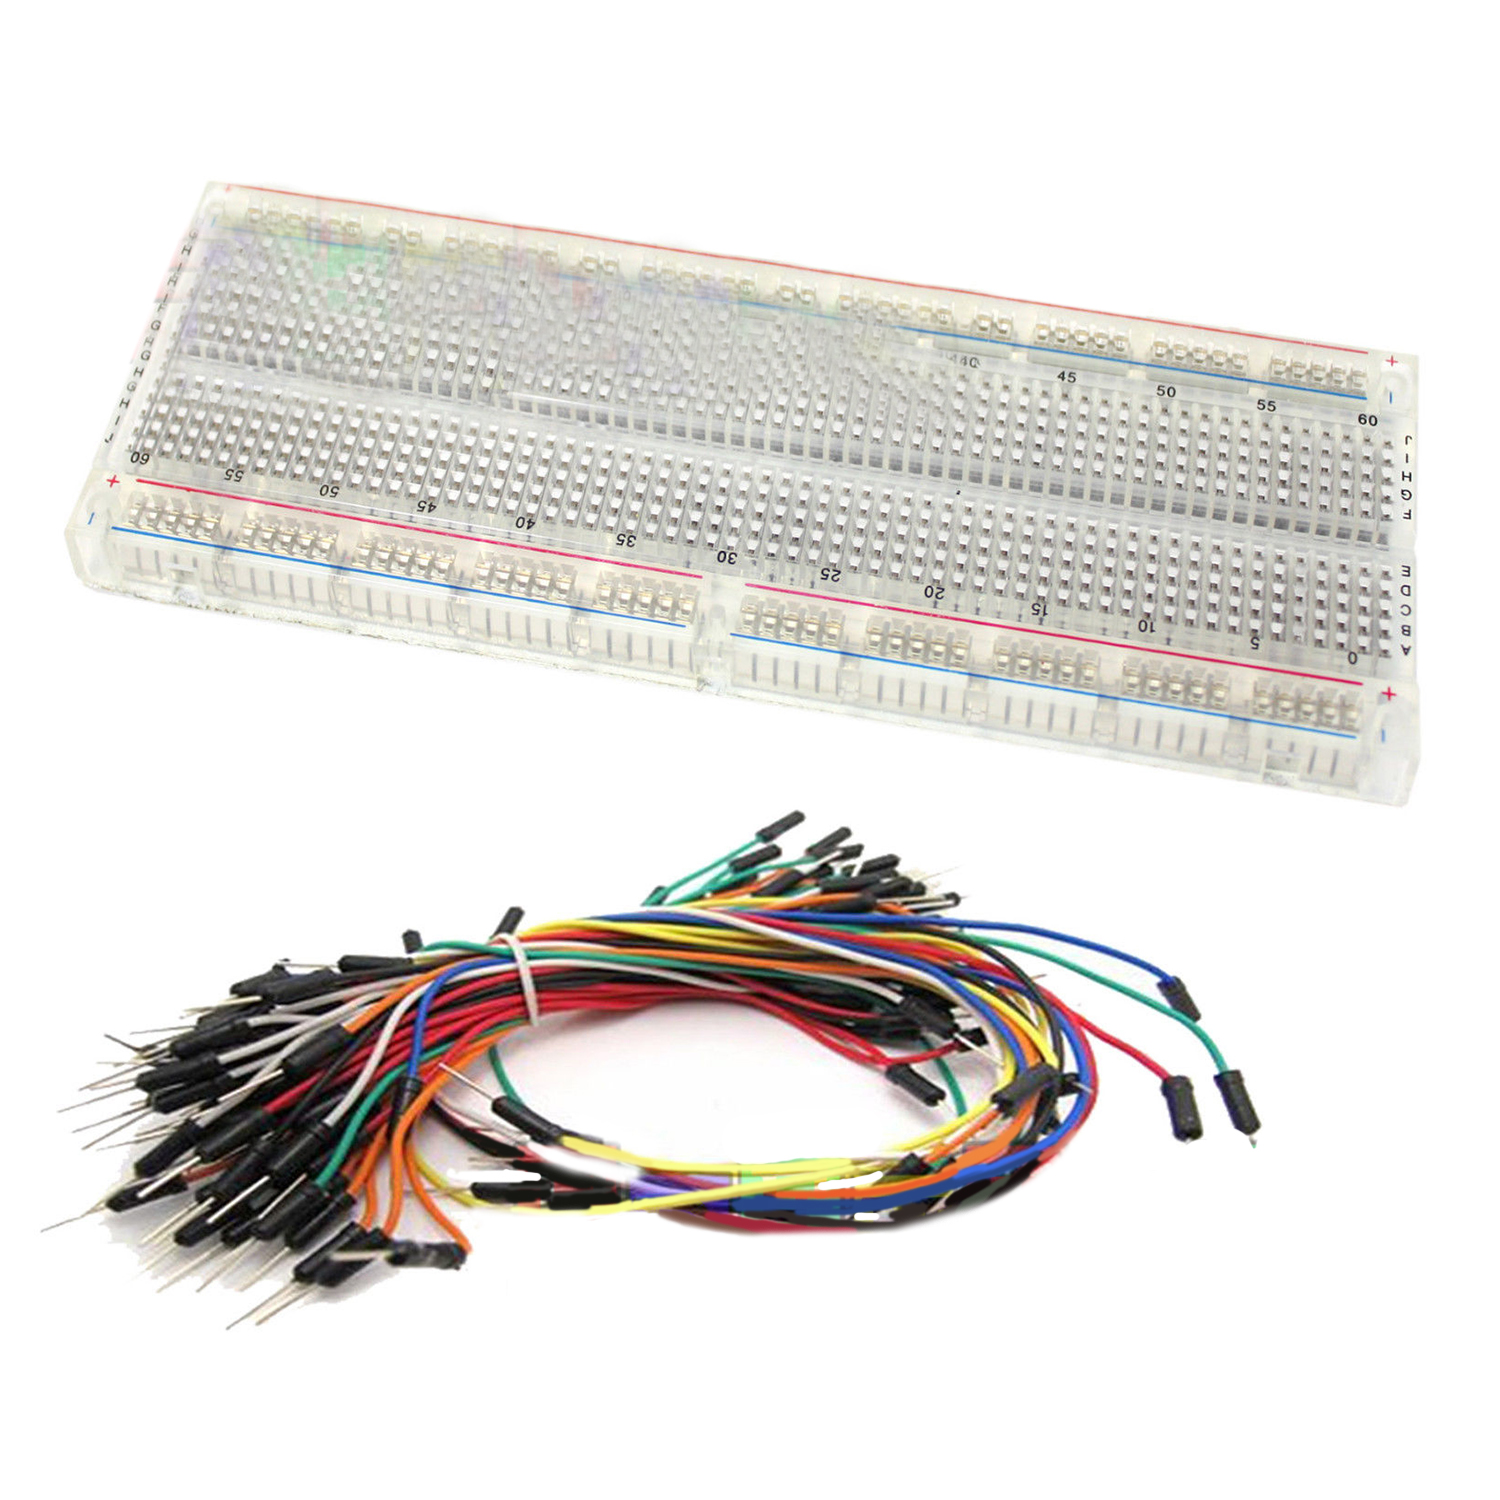 Clear MB-102 830 Point Testing PCB Breadboard + 65 Jump Cable Wires plastic solderless breadboard 840 tie point pcb panel 175 x 67 x 8mm